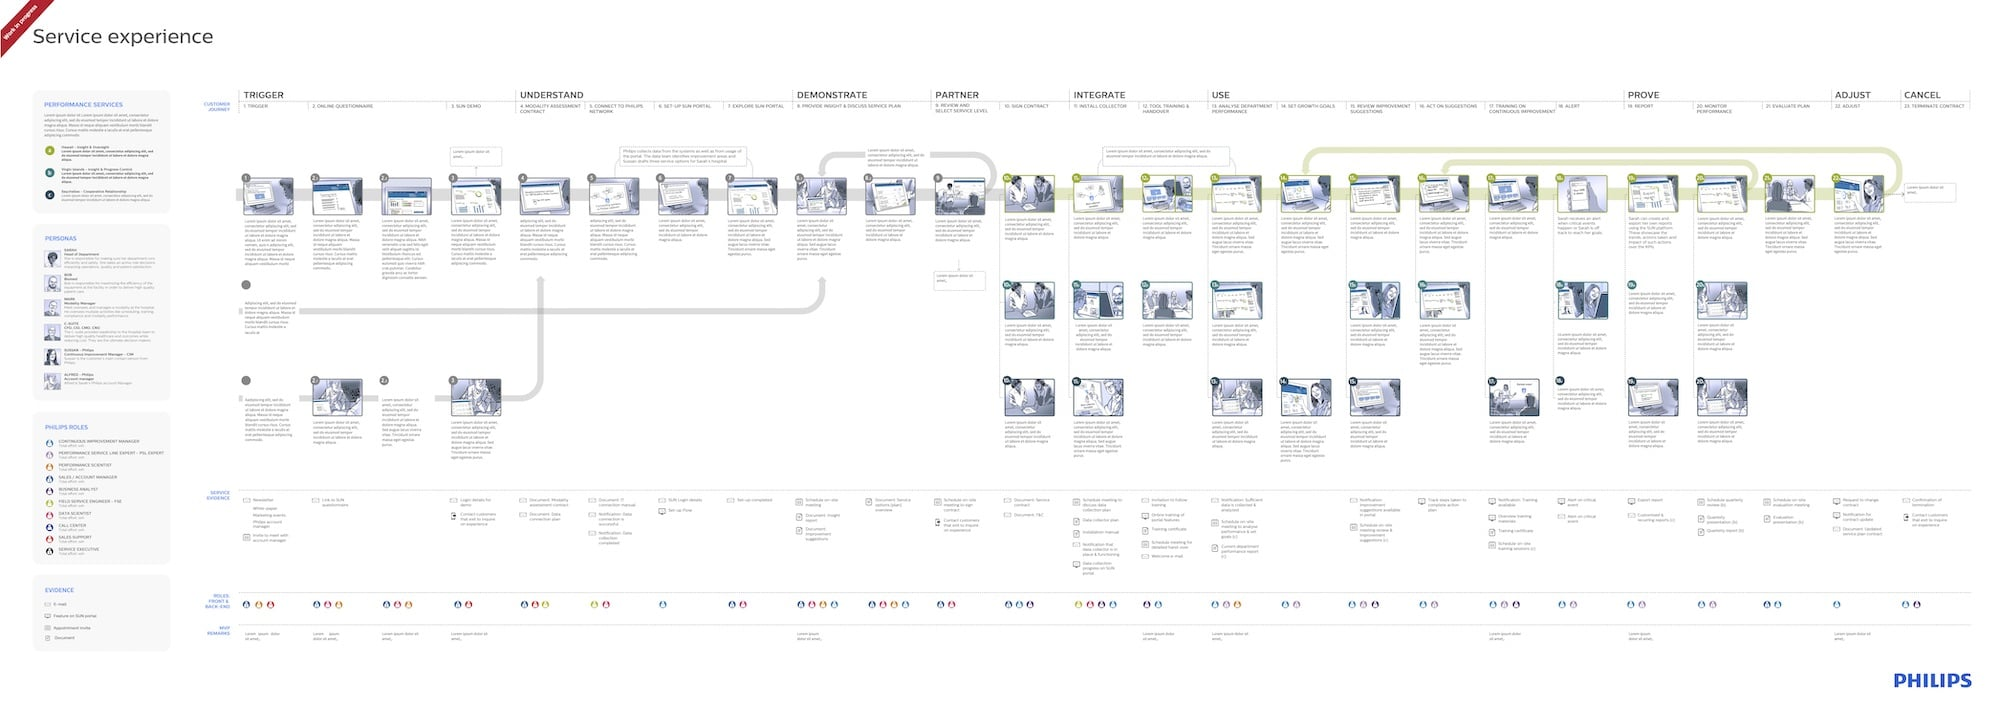 journey map depicting each of the service steps